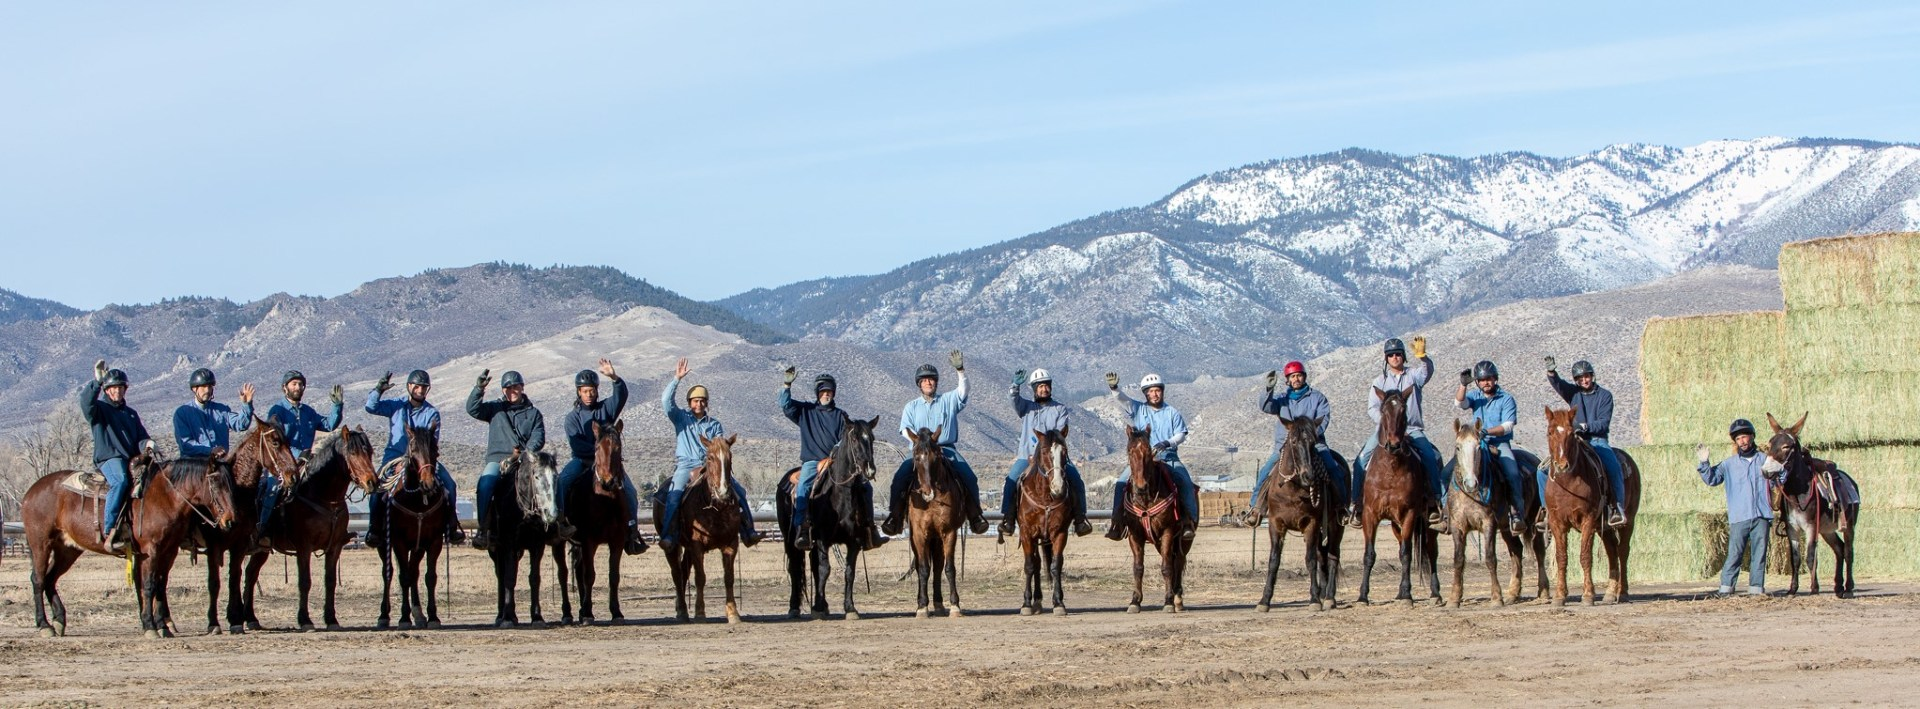 Group photo of the horses and burro that will be available at the February 22, 2020 adoption. Image: BLM.